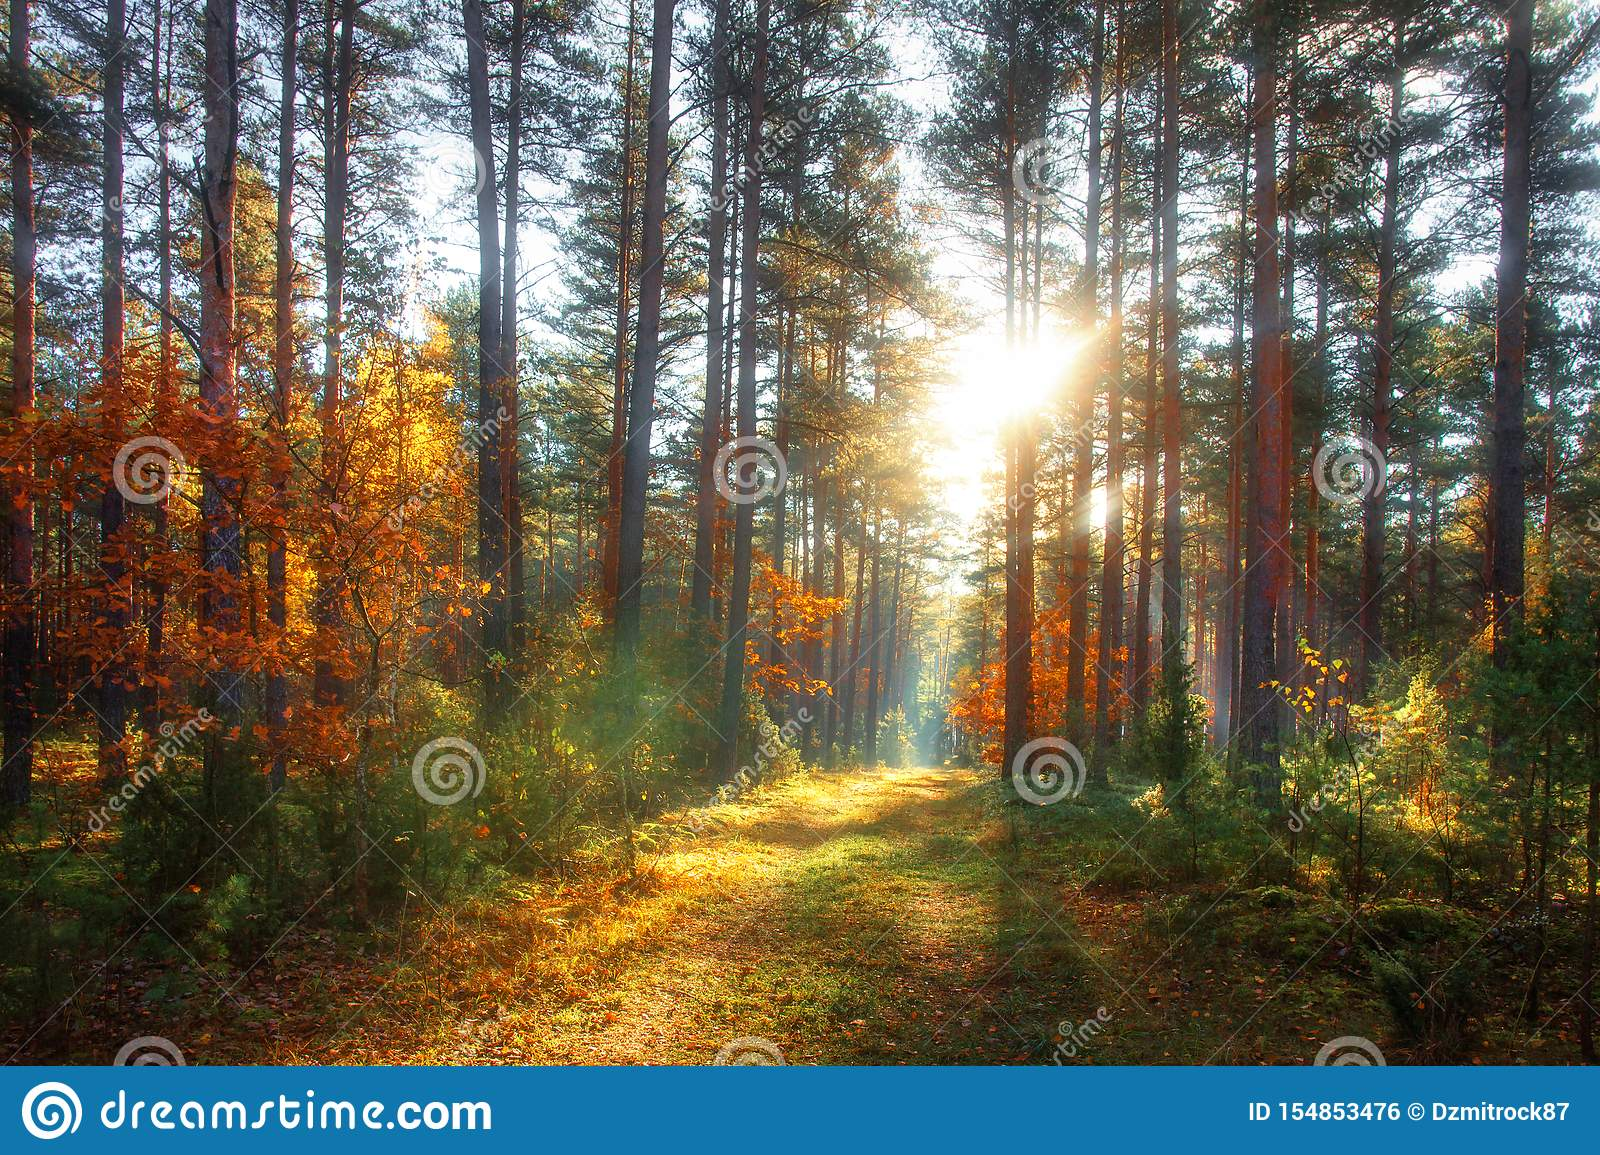 Autumn forest. Colorful nature landscape in sunny october day